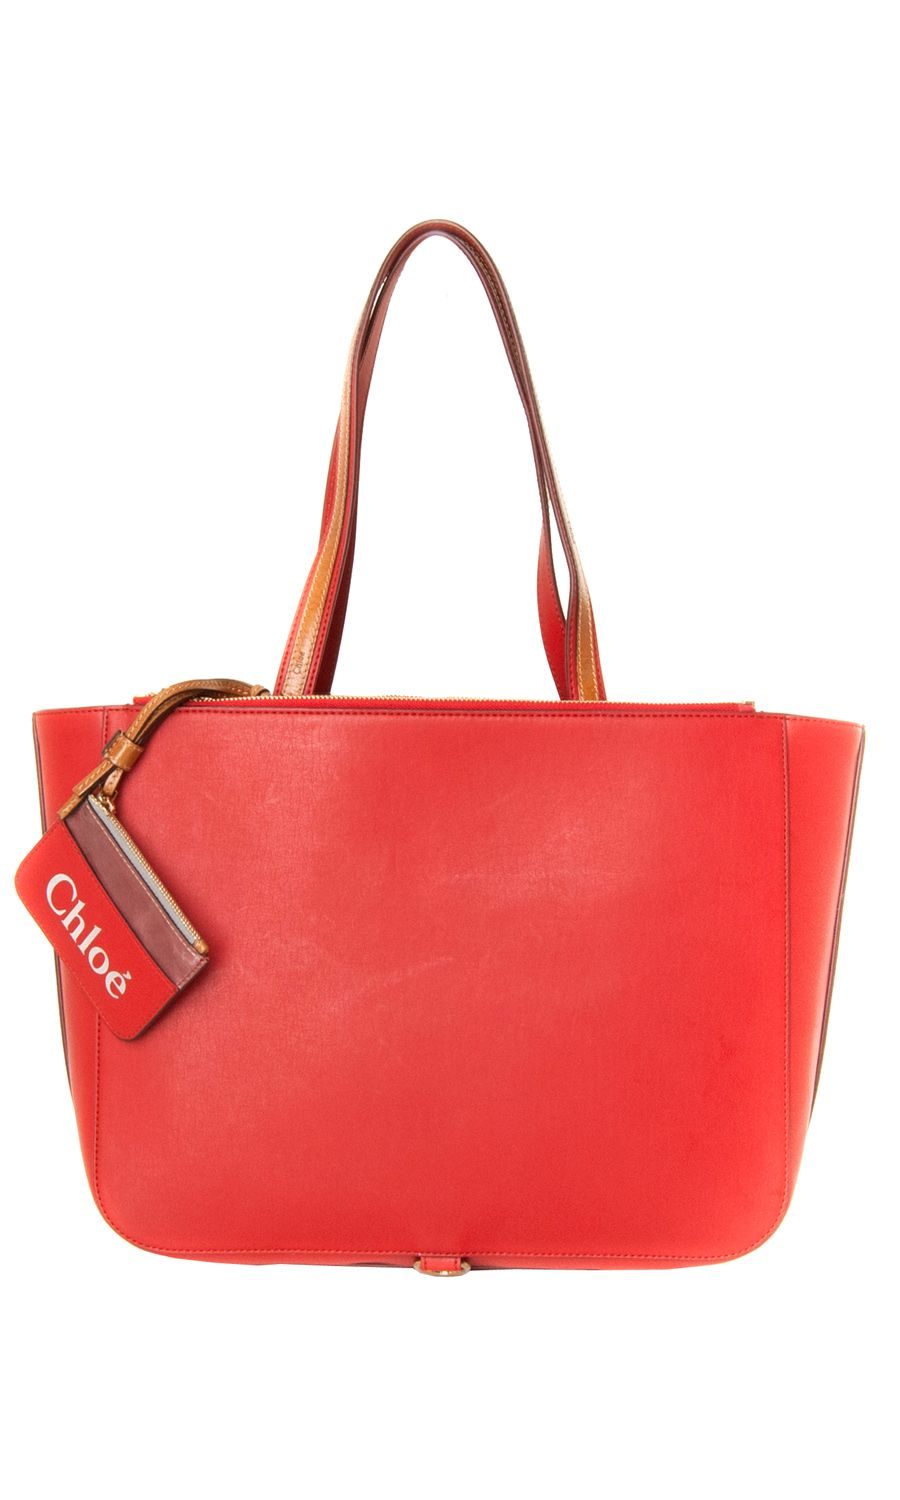 Chloé red #tote bag: double rounded top handles with gold.tone buckle fastenings